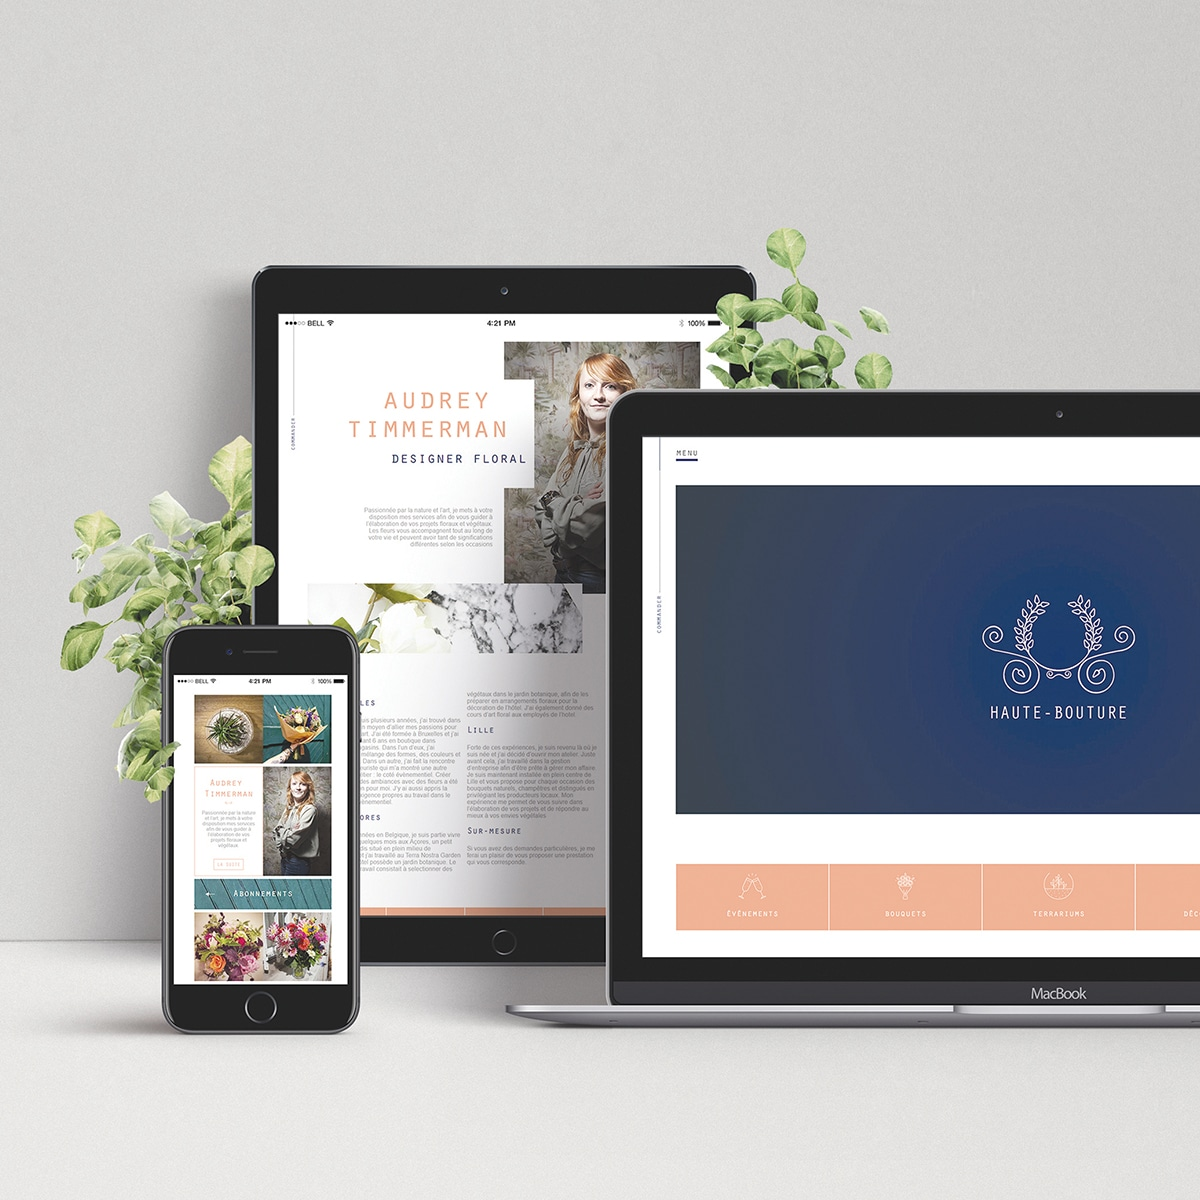 Smartphone, pc et tablette affichant le web design du site